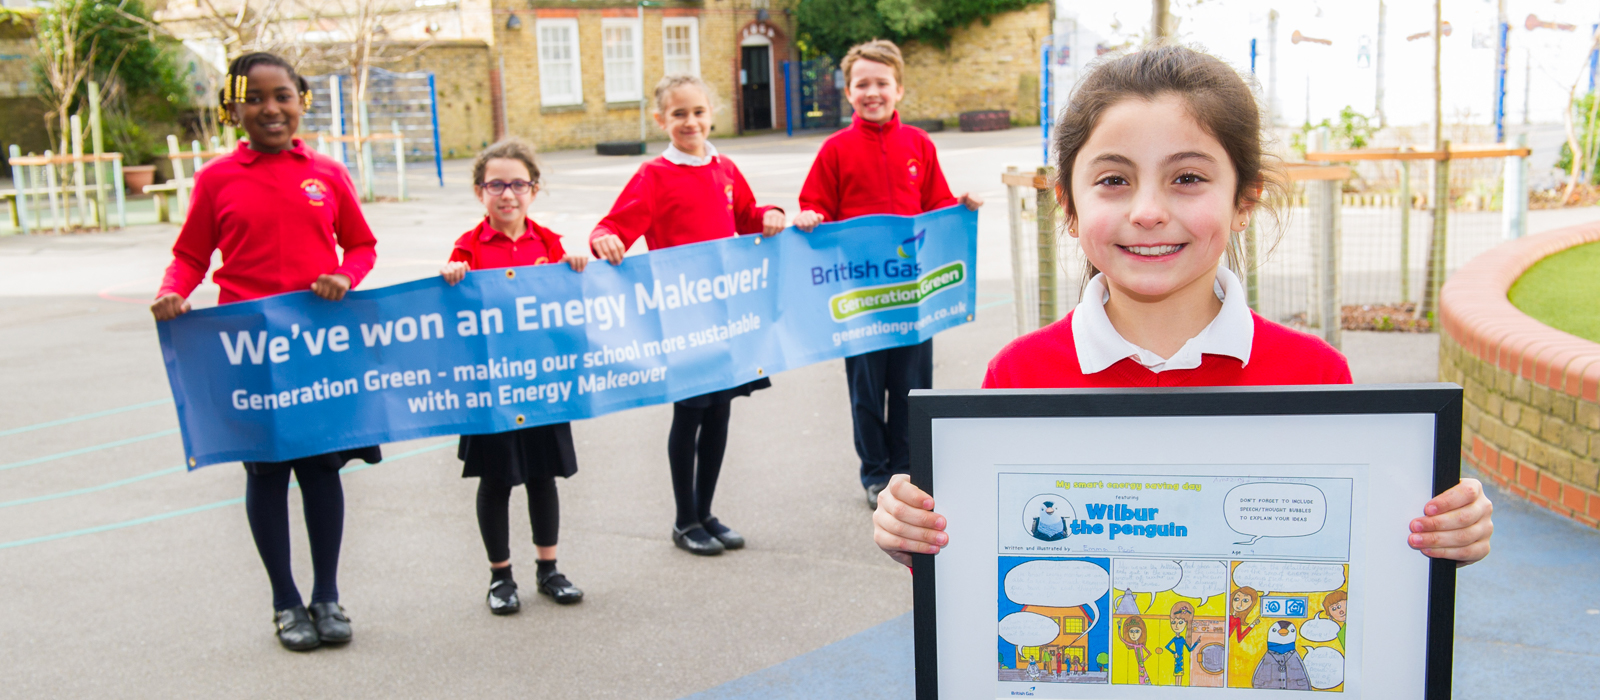 Young schoolchildren holding up British Gas banner and winning entry